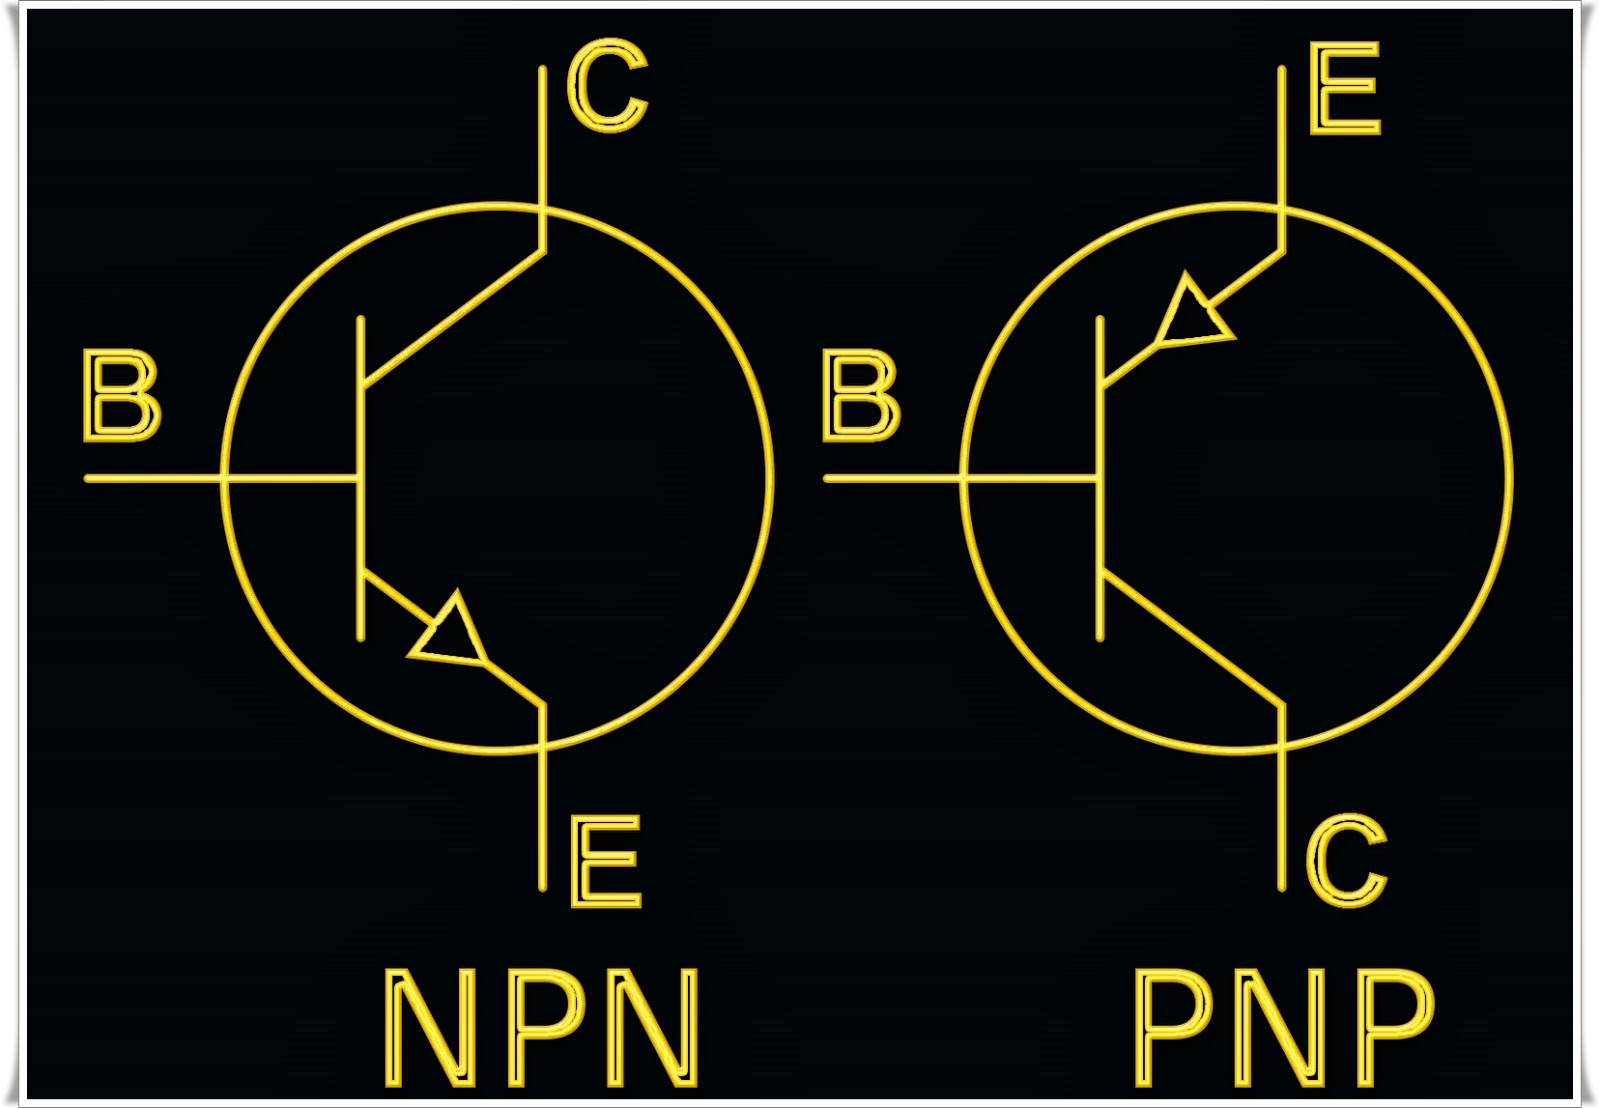 2013 12 01 Elepros Touch Switch Using Cd4011 Electronic Circuits And Diagram Transistors